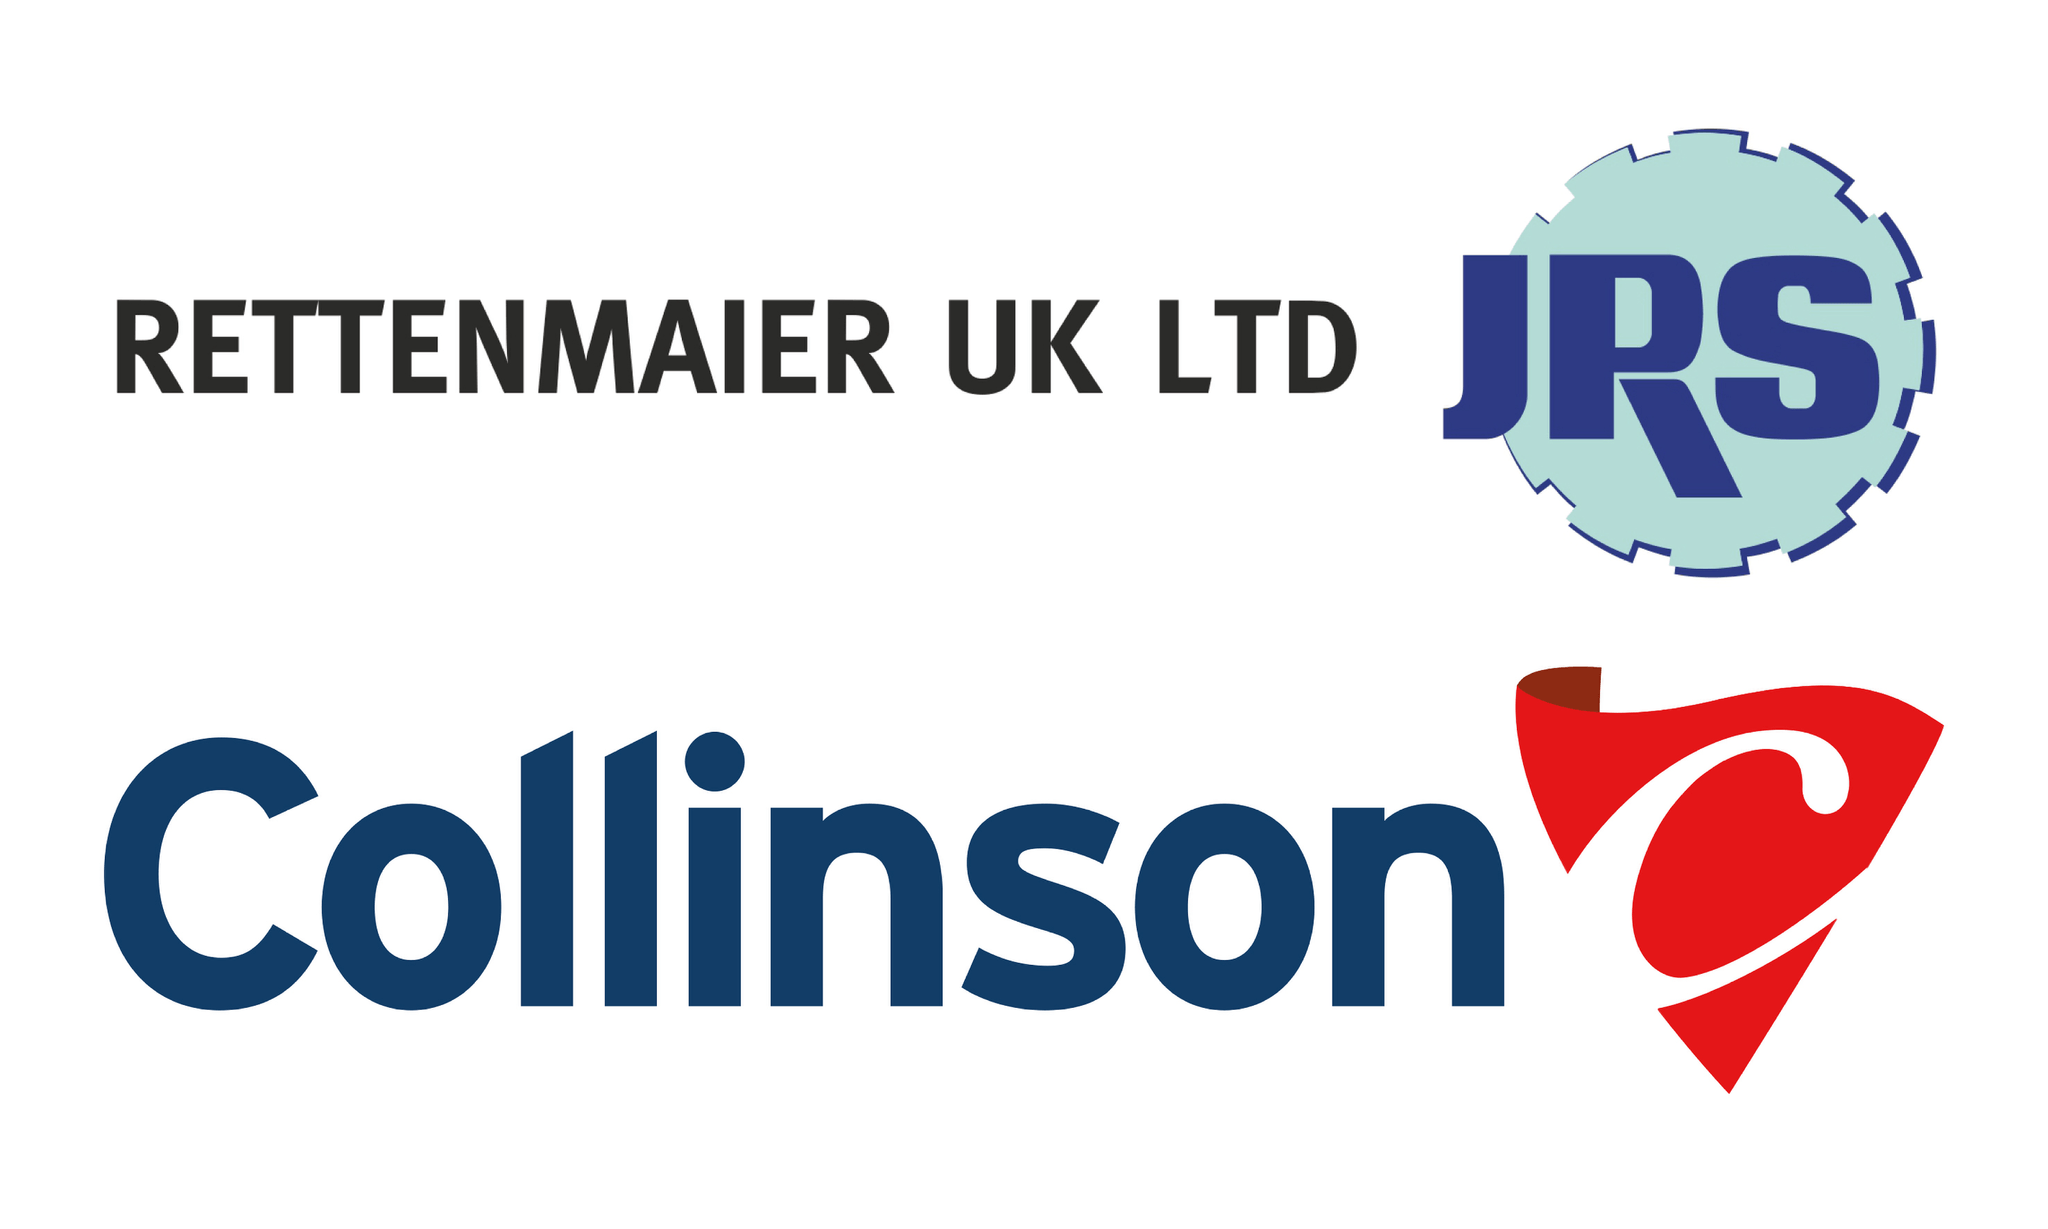 Collinson & Rettenmaier UK